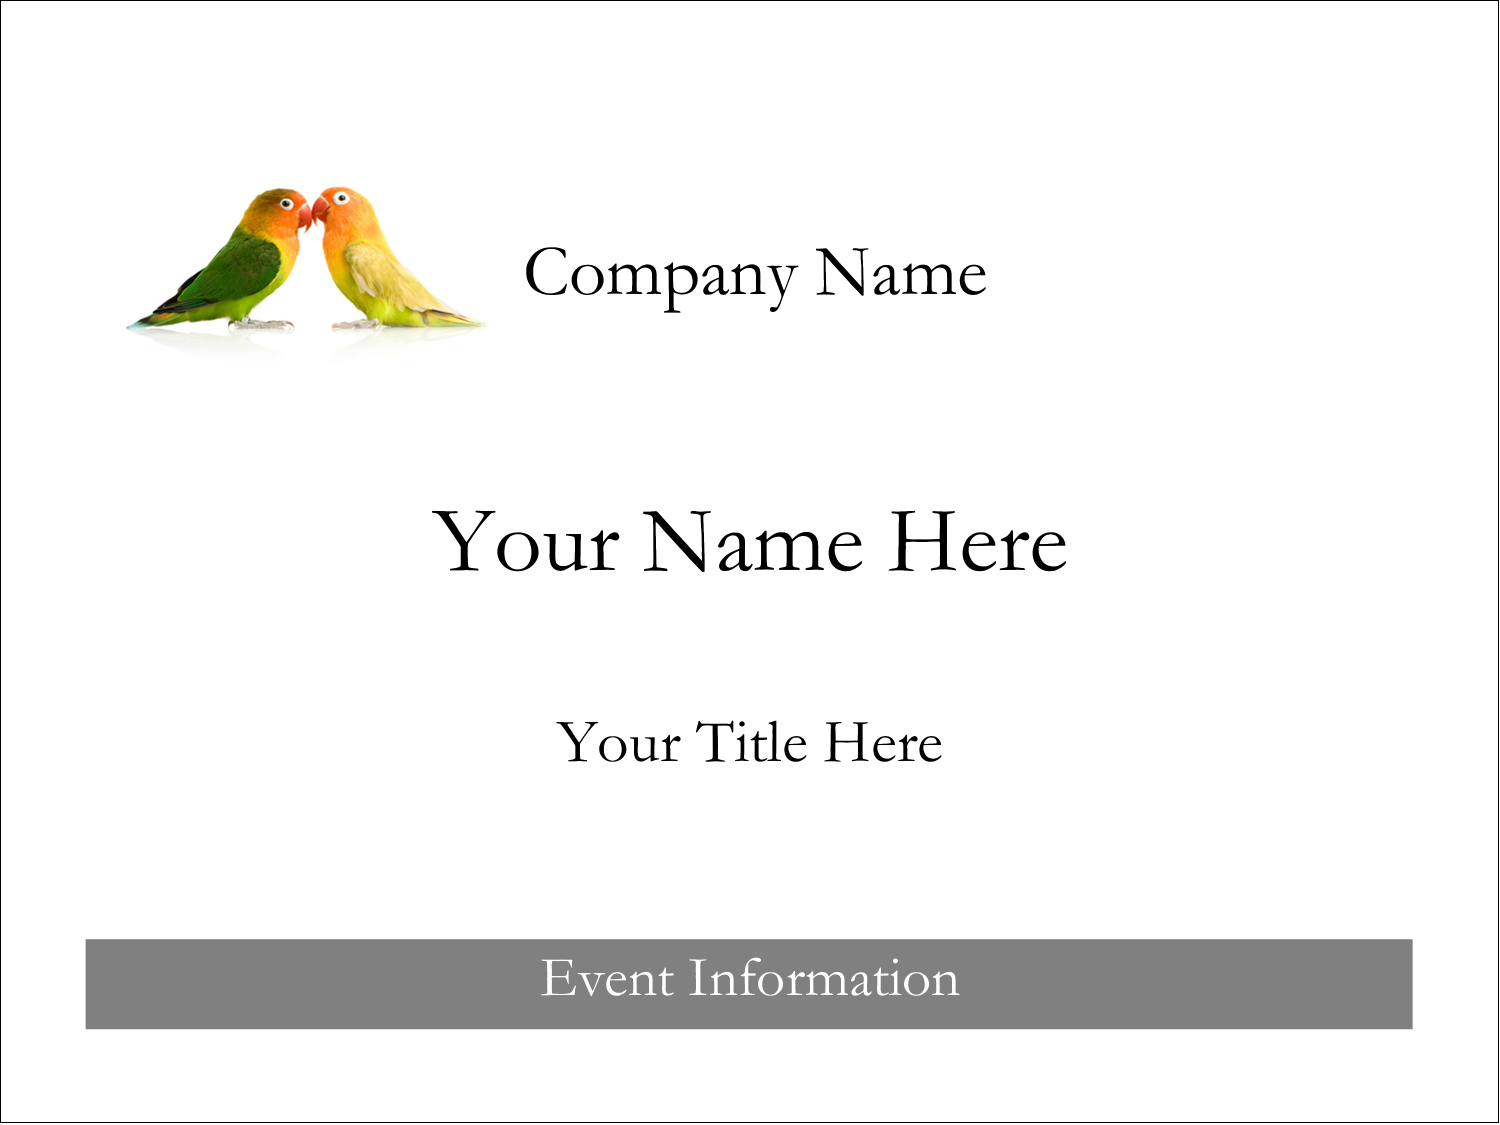 "4"" x 3"" Name Tags - Birds in Nature"